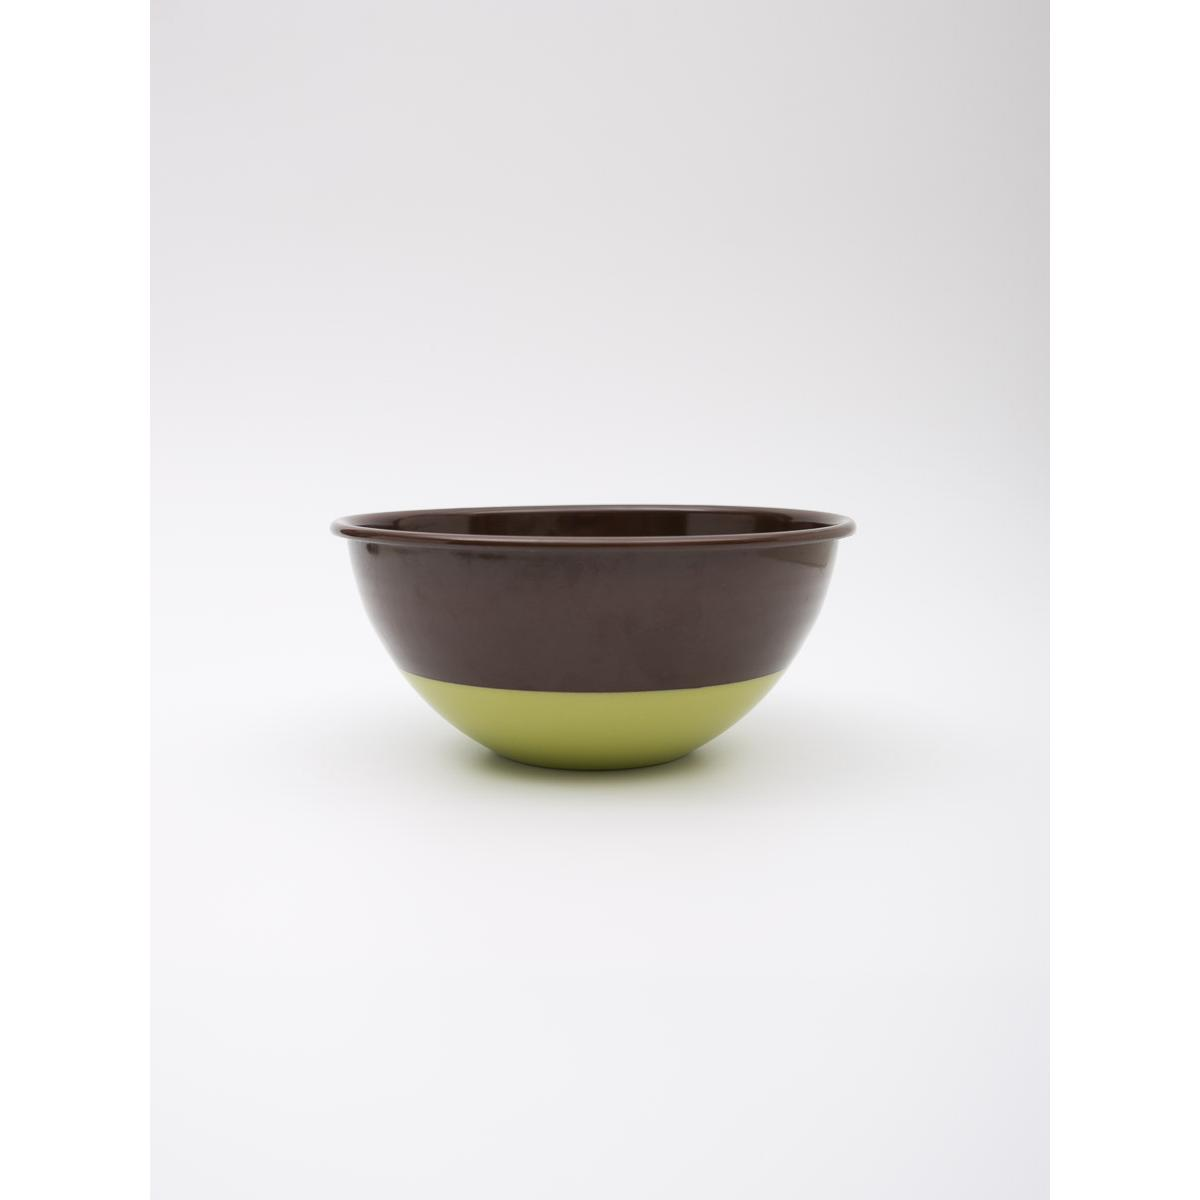 2.5L enamel mixing bowl - Chocolate with green